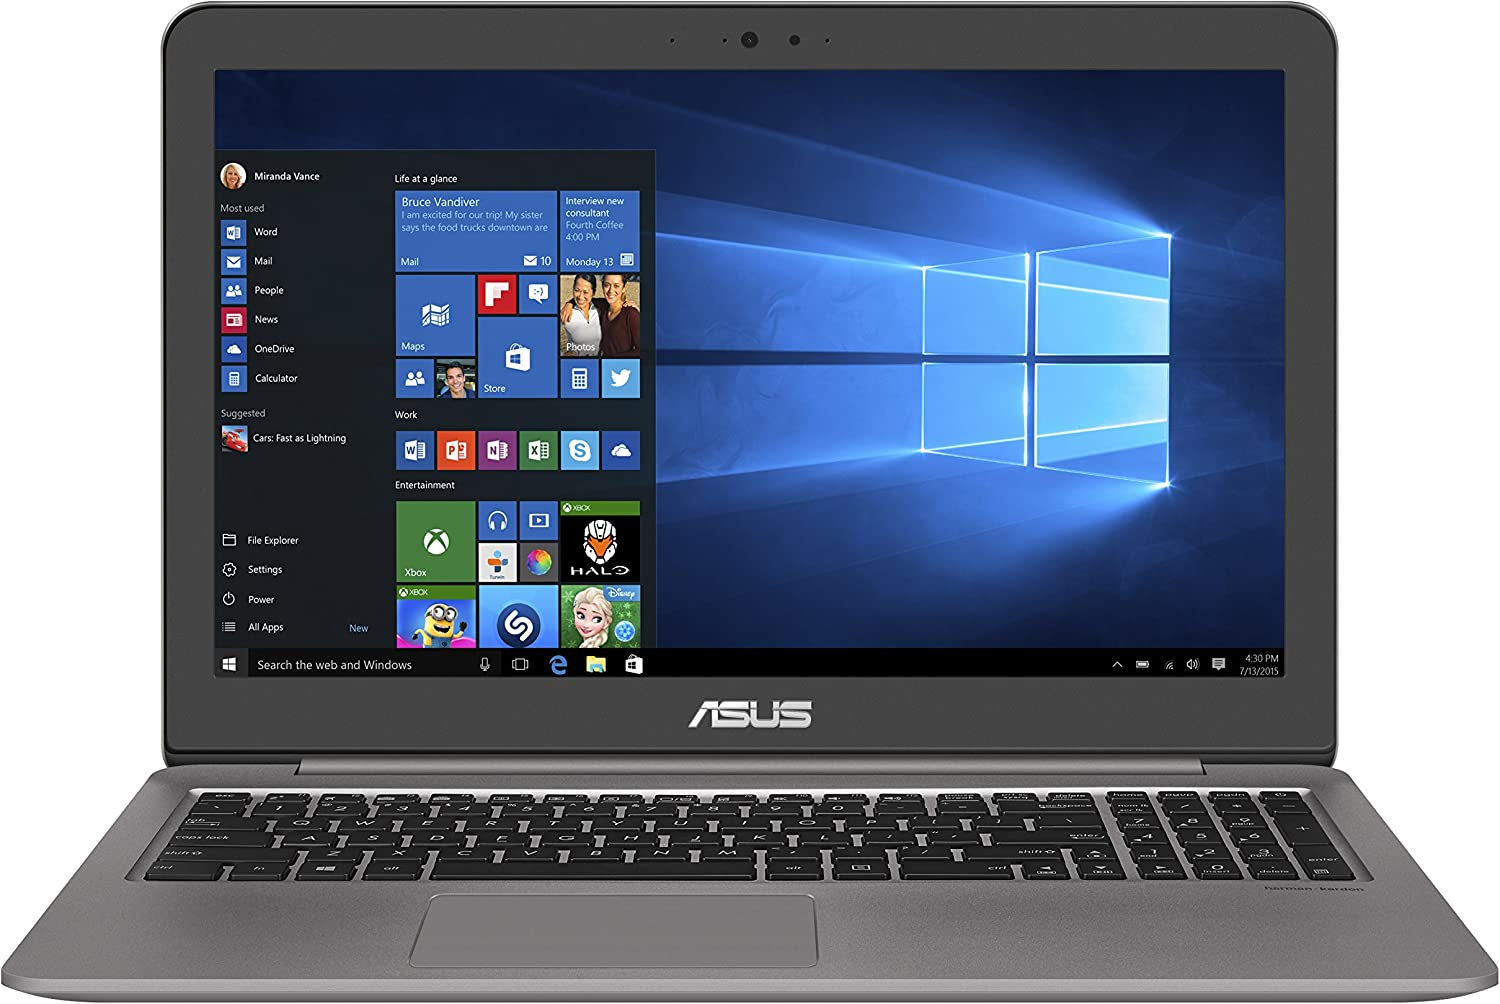 ASUS UX510UX-NH74 ZenBook 15 FHD UX510UX, Intel Core i7 Processor (up to 3.5GHz), 8GB DDR4, GeForce GTX 950M, 15.6